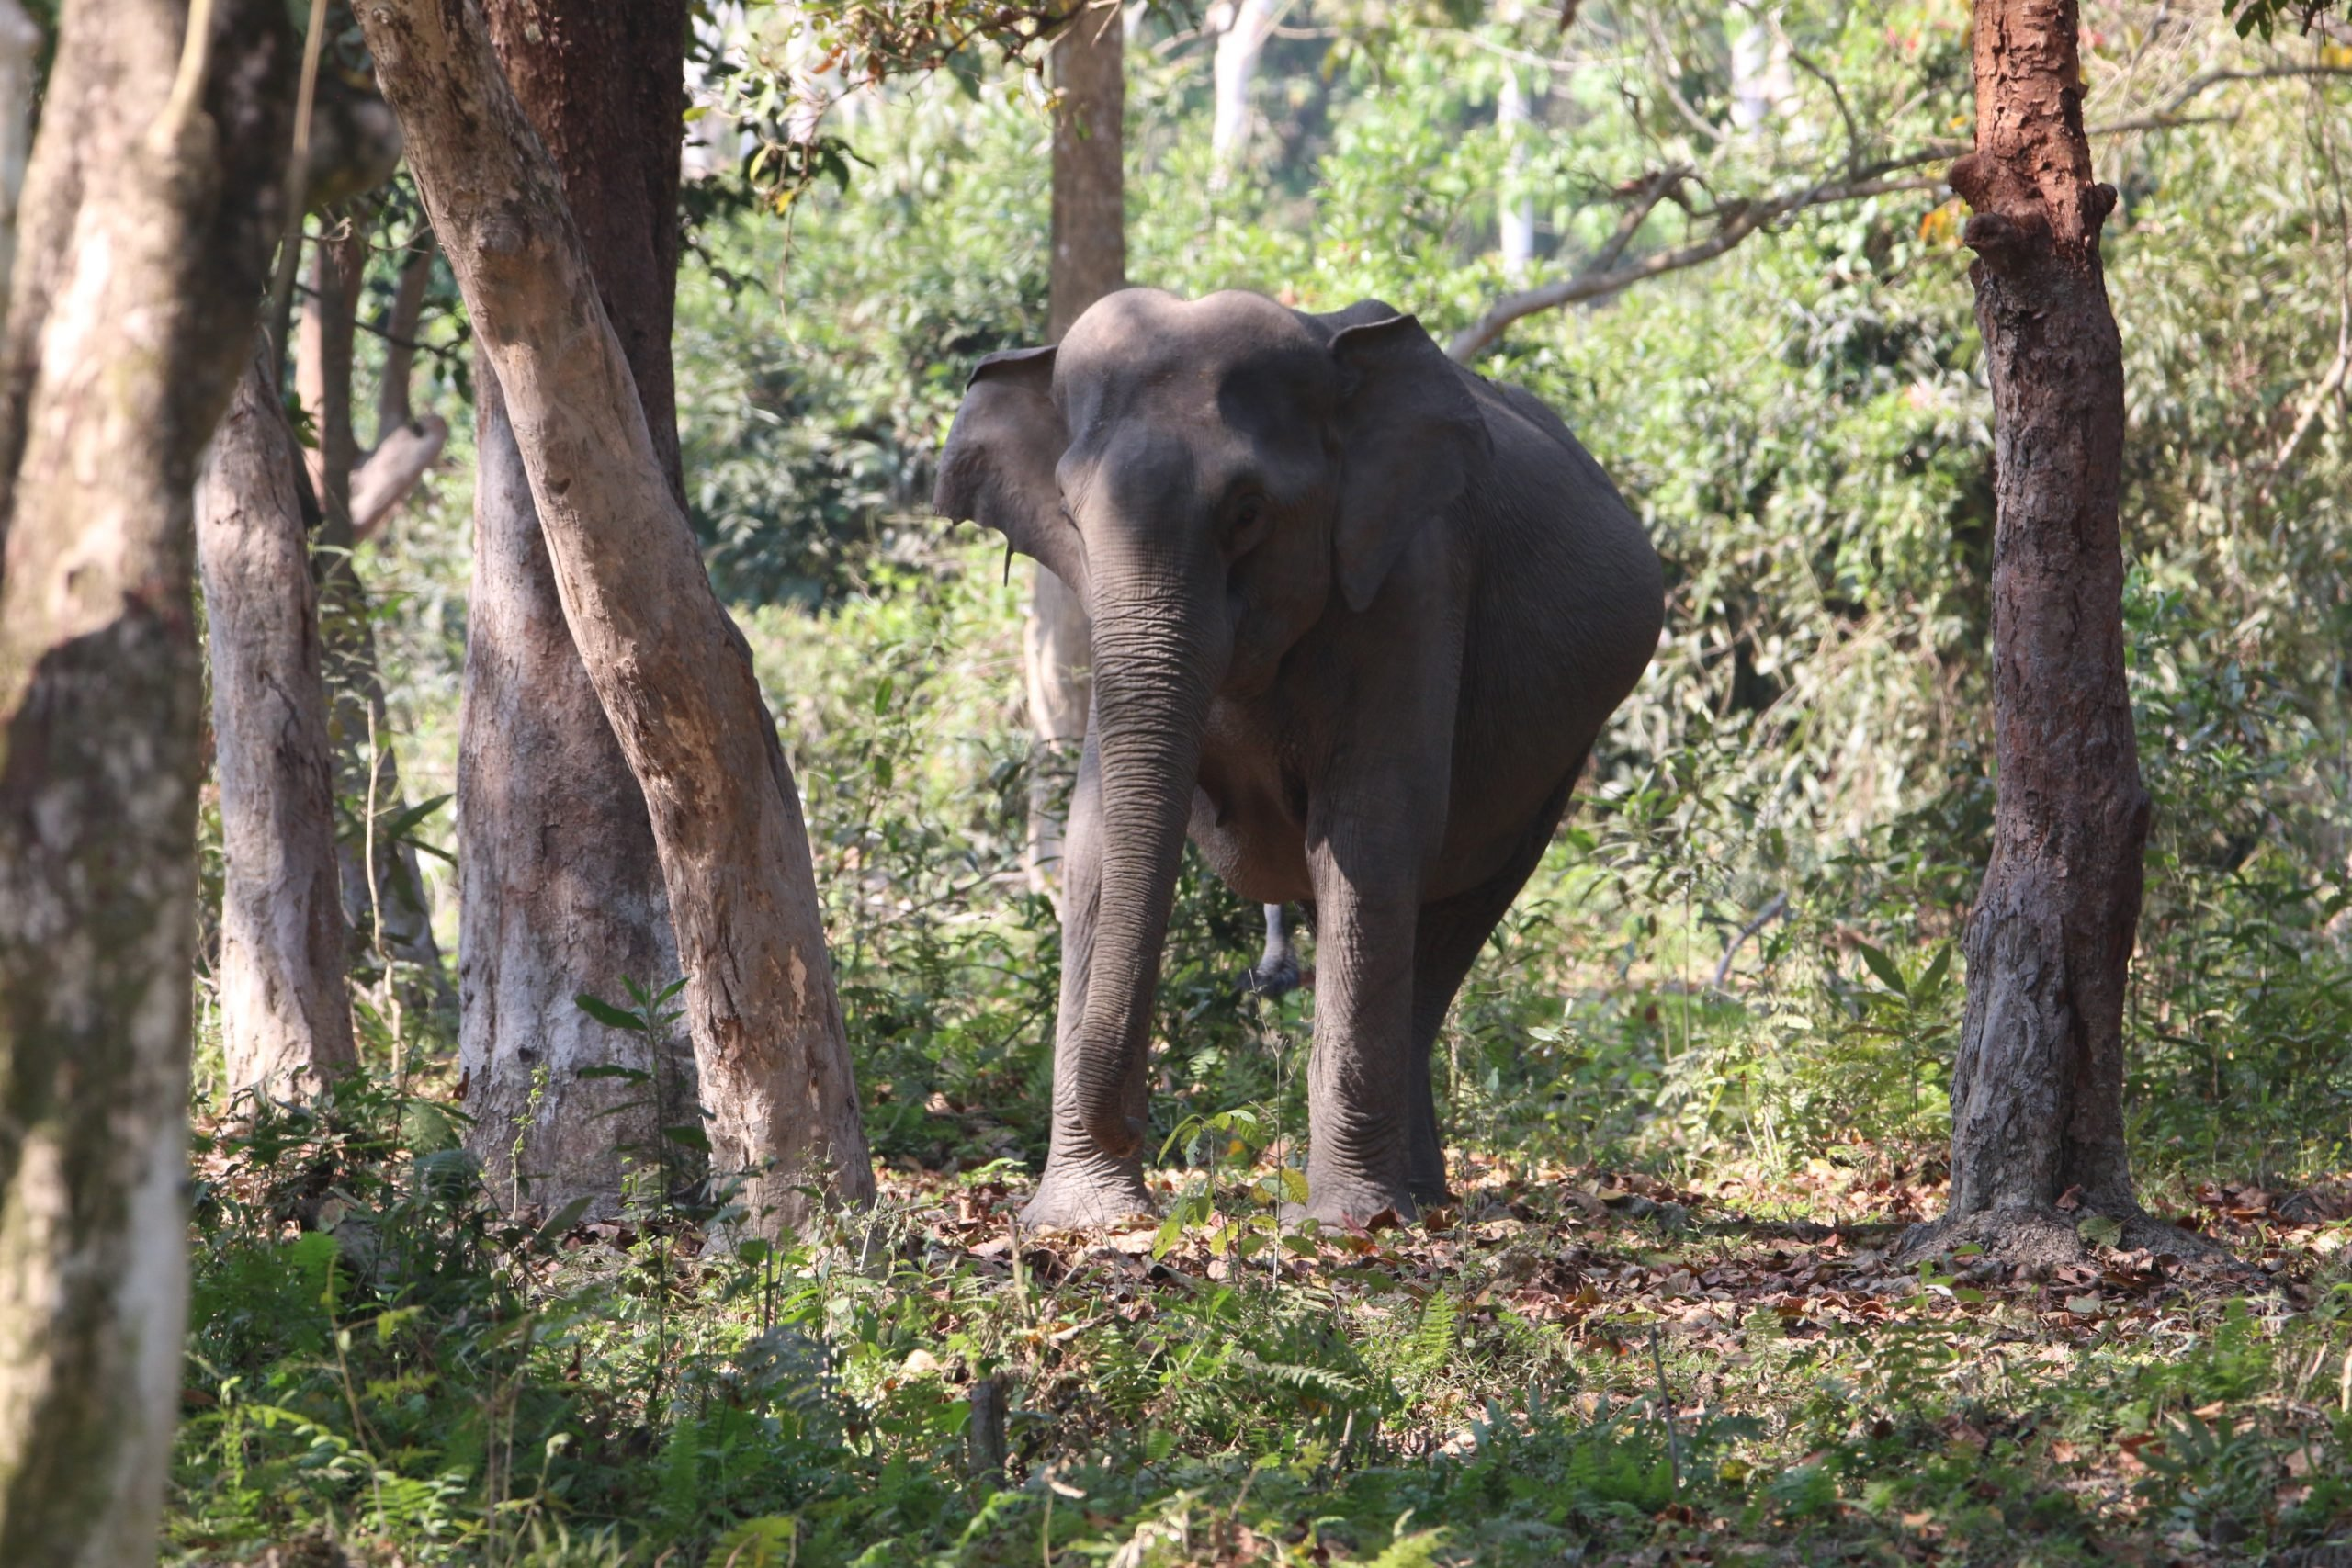 An elephant in a jungle